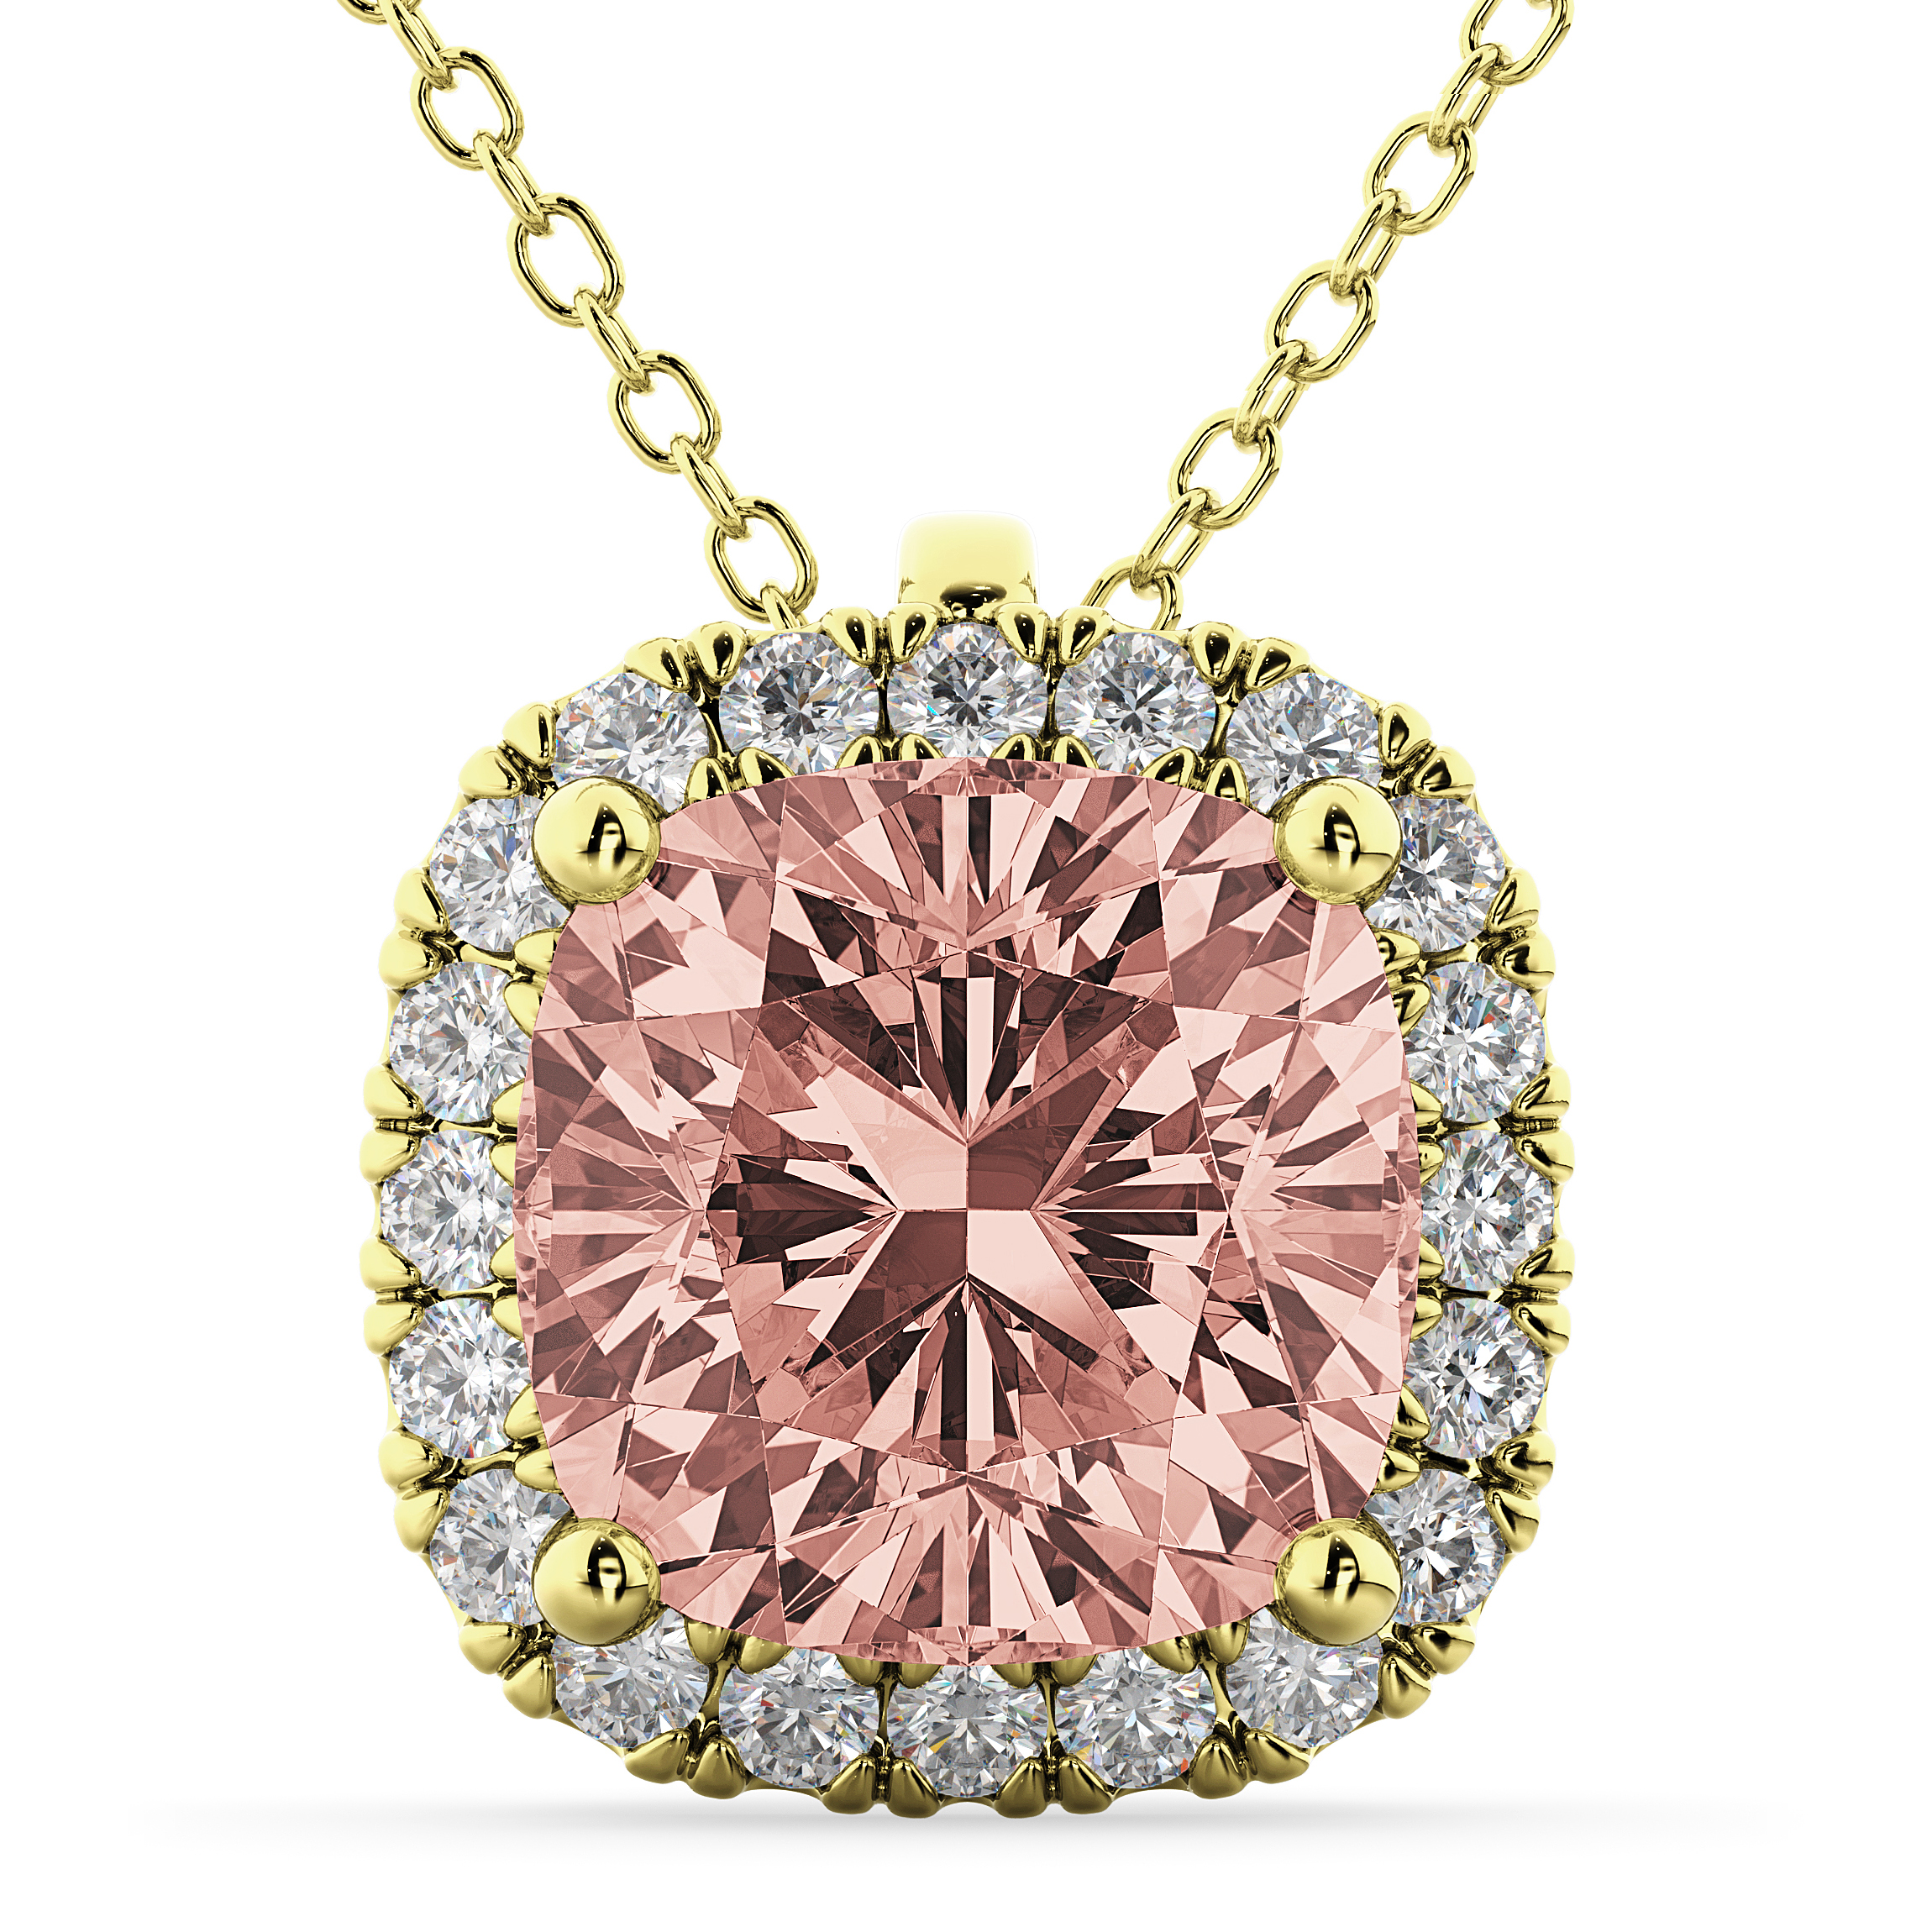 a pendant cushion pdp diamond gold amethyst johnlewis buya rsp online cut b at main necklace davis